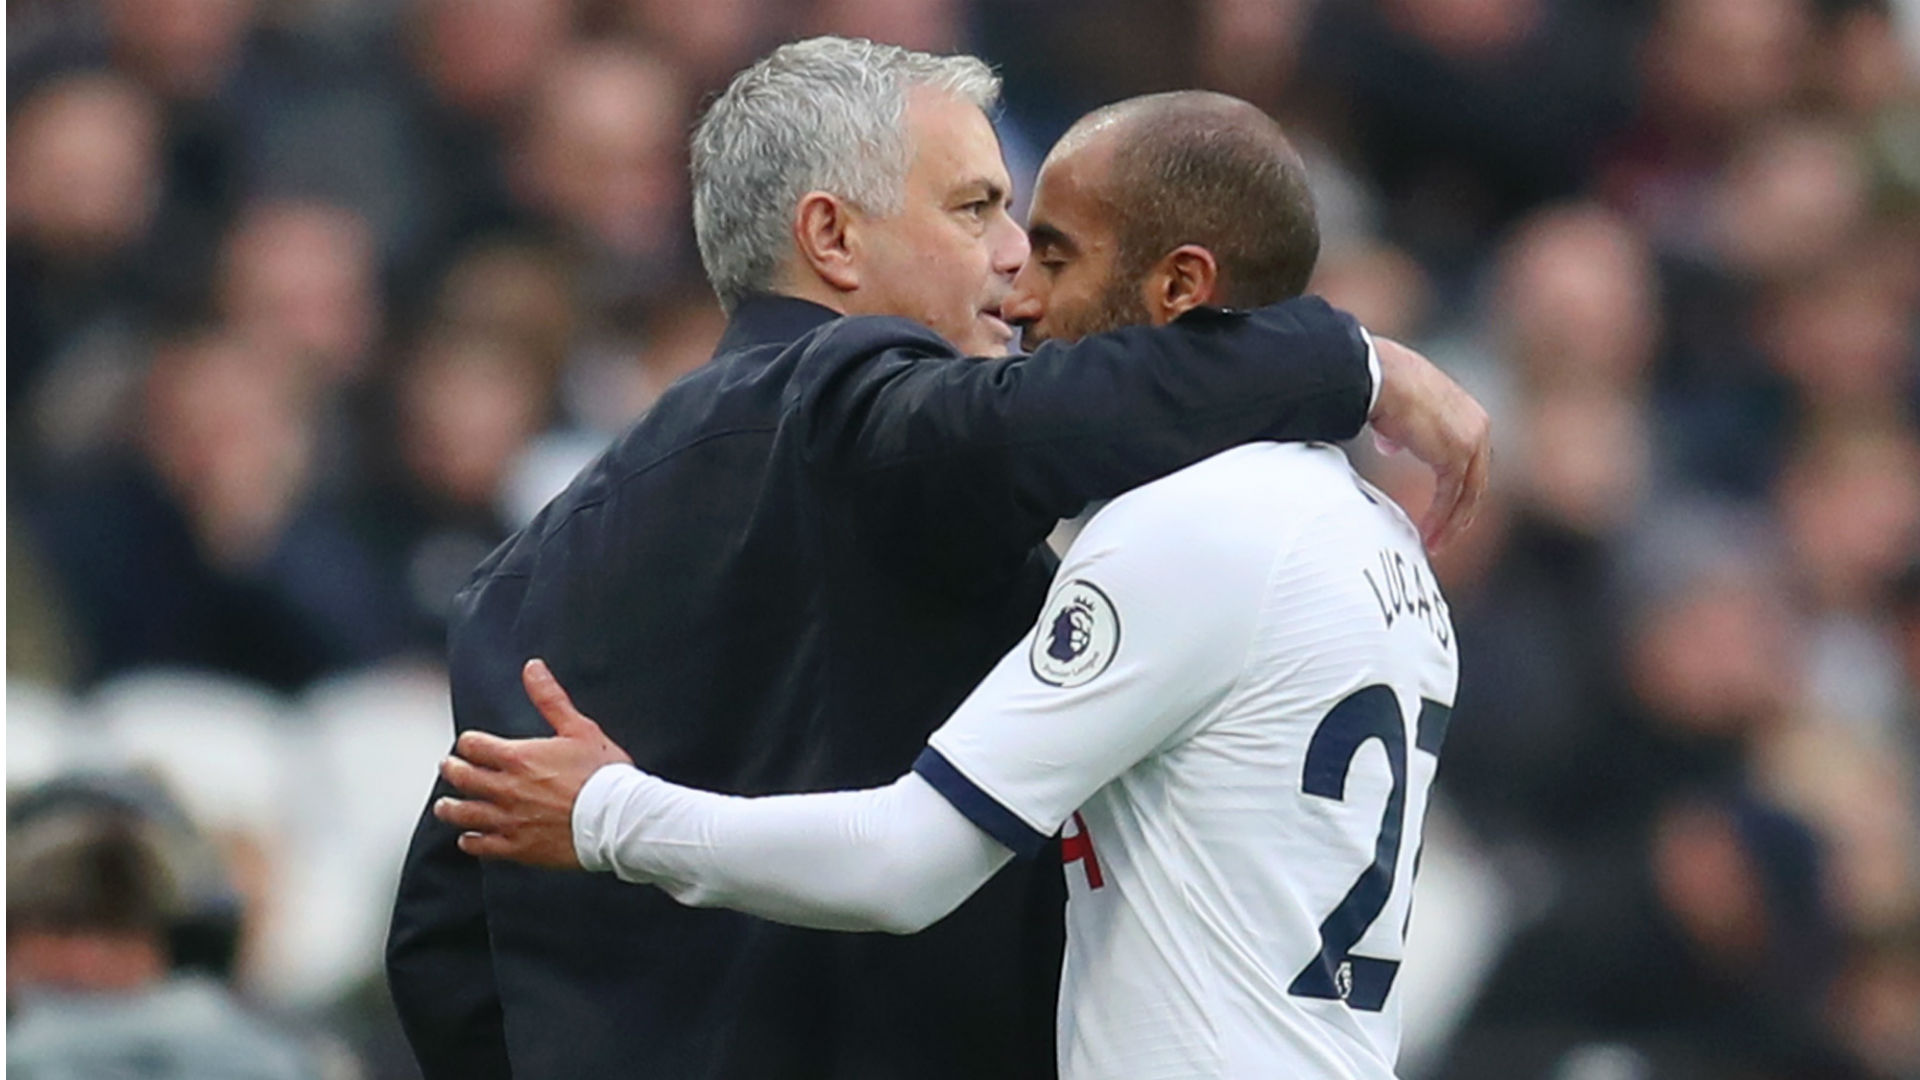 'Lucas did everything for us this season' - Mourinho hails Tottenham star for making important 'sacrifices'